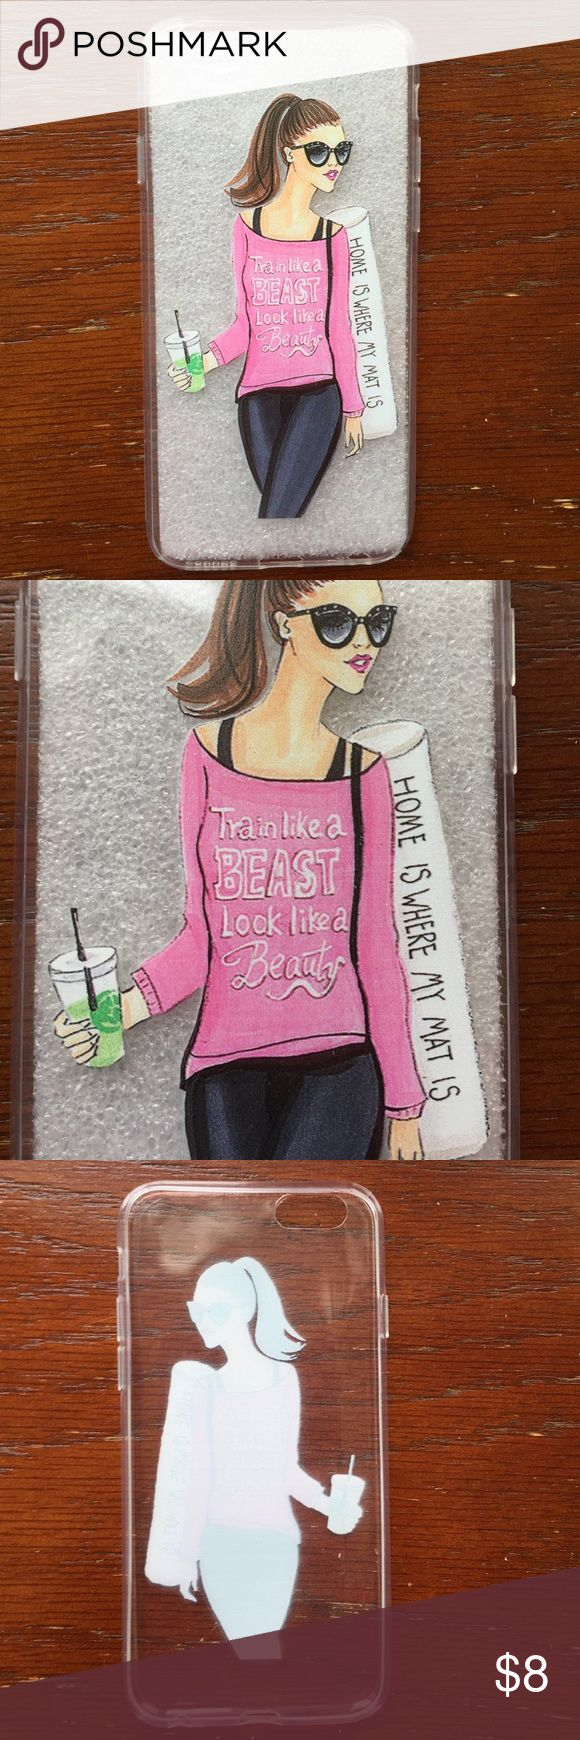 """Gym girl"" phone case Clear and flexible iPhone6 4.7"" case.  Case is glossy with image printed on the outside.  Features girl with graphic top, gym mat and green smoothie. Price firm.  Bundle with others marked the same for 2 for$14 deal.  New in packaging. Accessories Phone Cases"